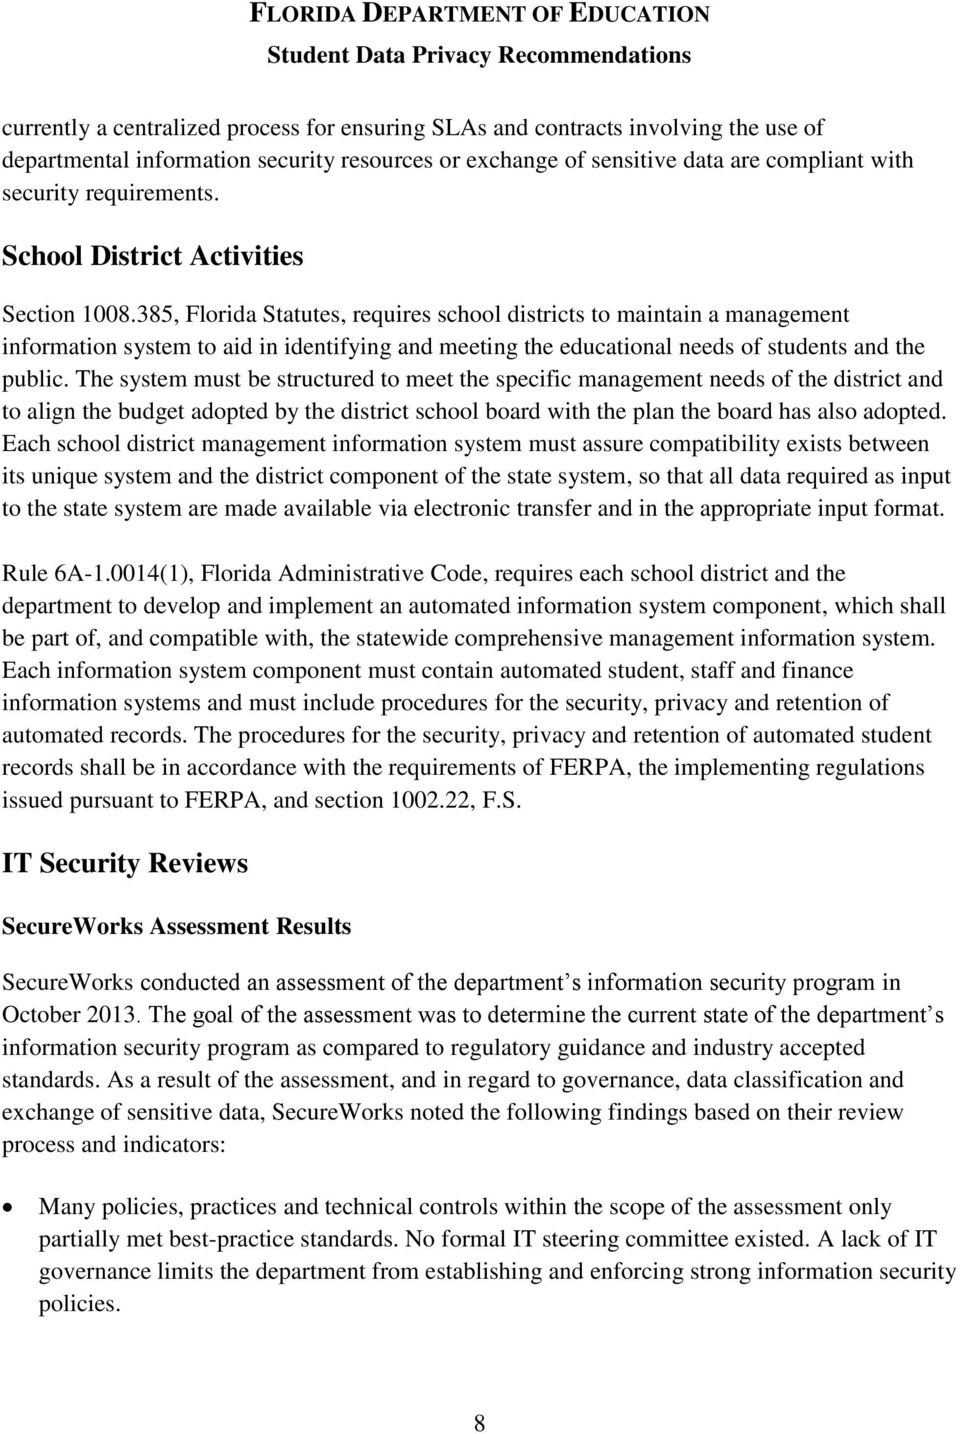 385, Florida Statutes, requires school districts to maintain a management information system to aid in identifying and meeting the educational needs of students and the public.